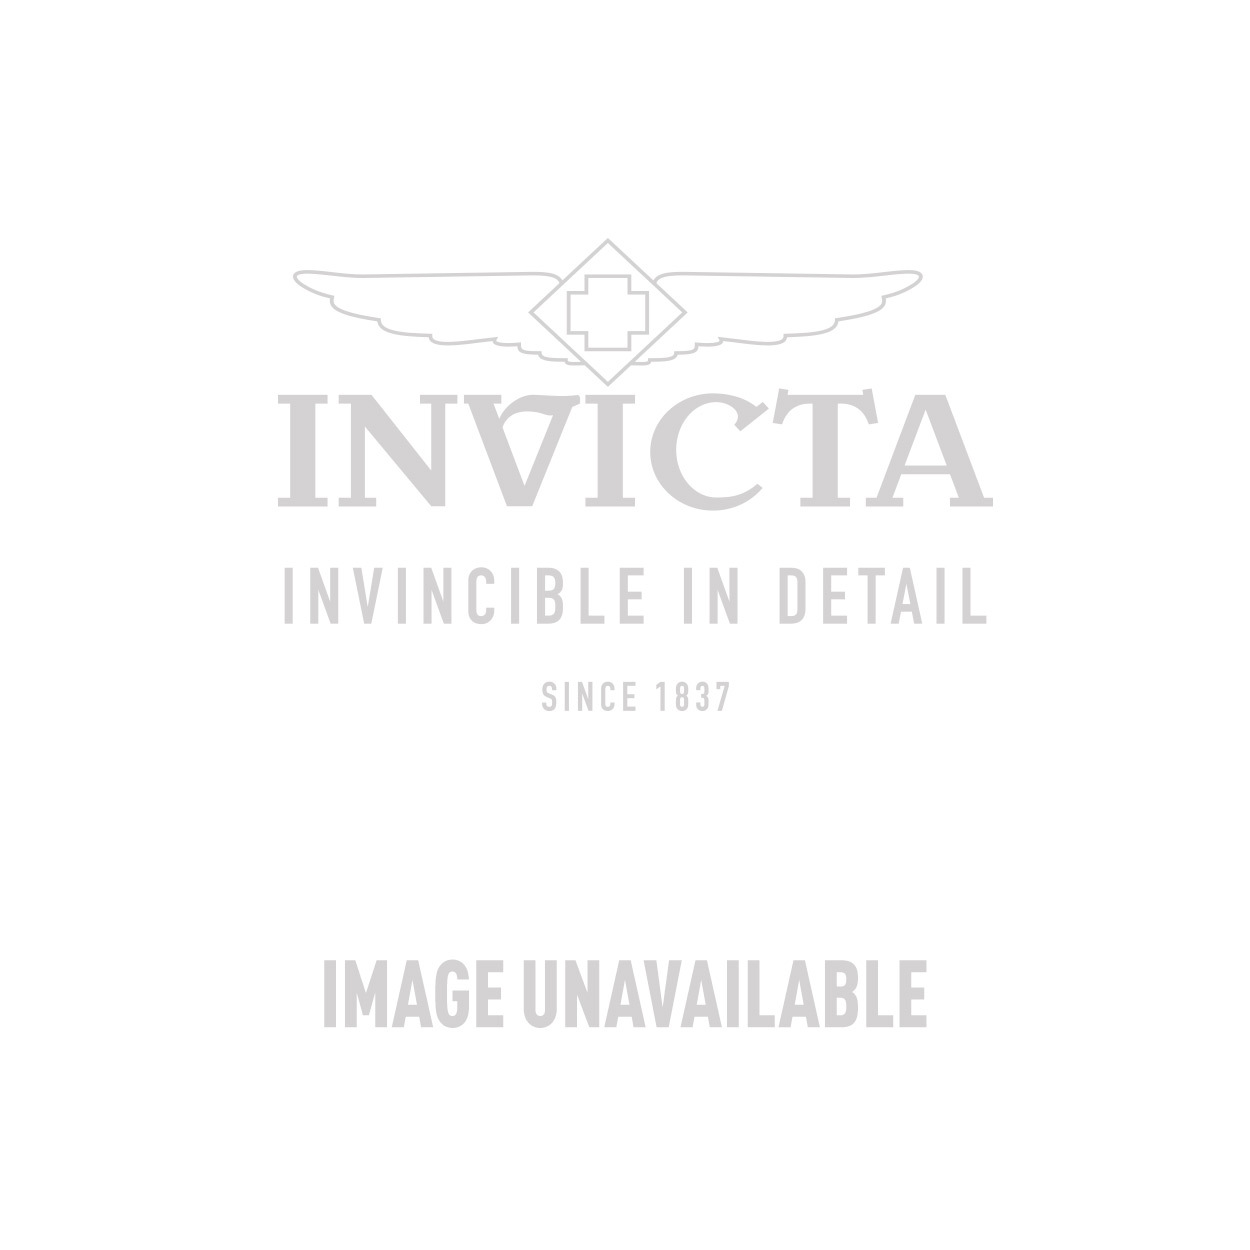 Invicta Bolt Swiss Made Quartz Watch - Black, Stainless Steel case Stainless Steel band - Model 17160